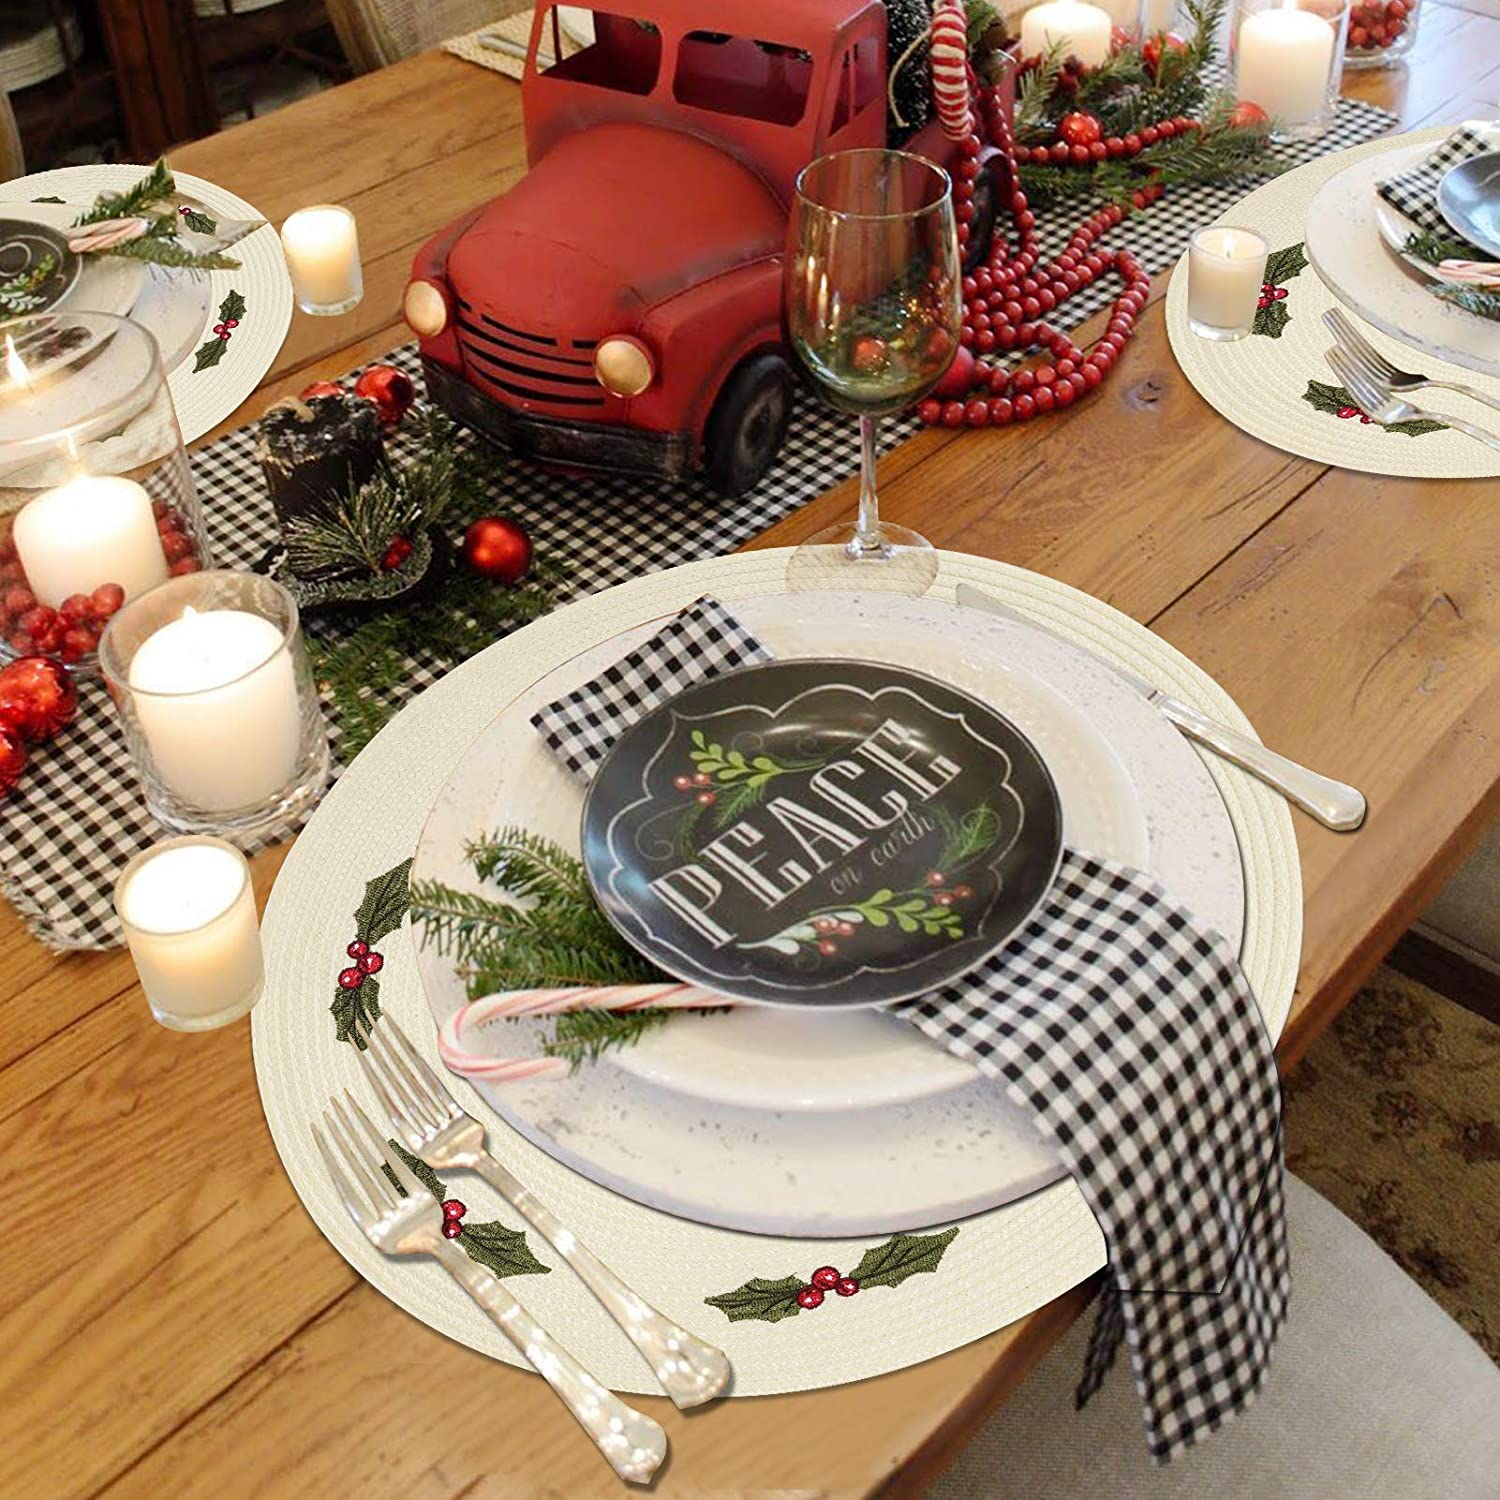 wartleves Christmas Placemats Set of 4 Embroidered Red Placemats for Dining Table Dinner Mats for Christmas Winter New Year Thanksgiving Decorations 15 Inch